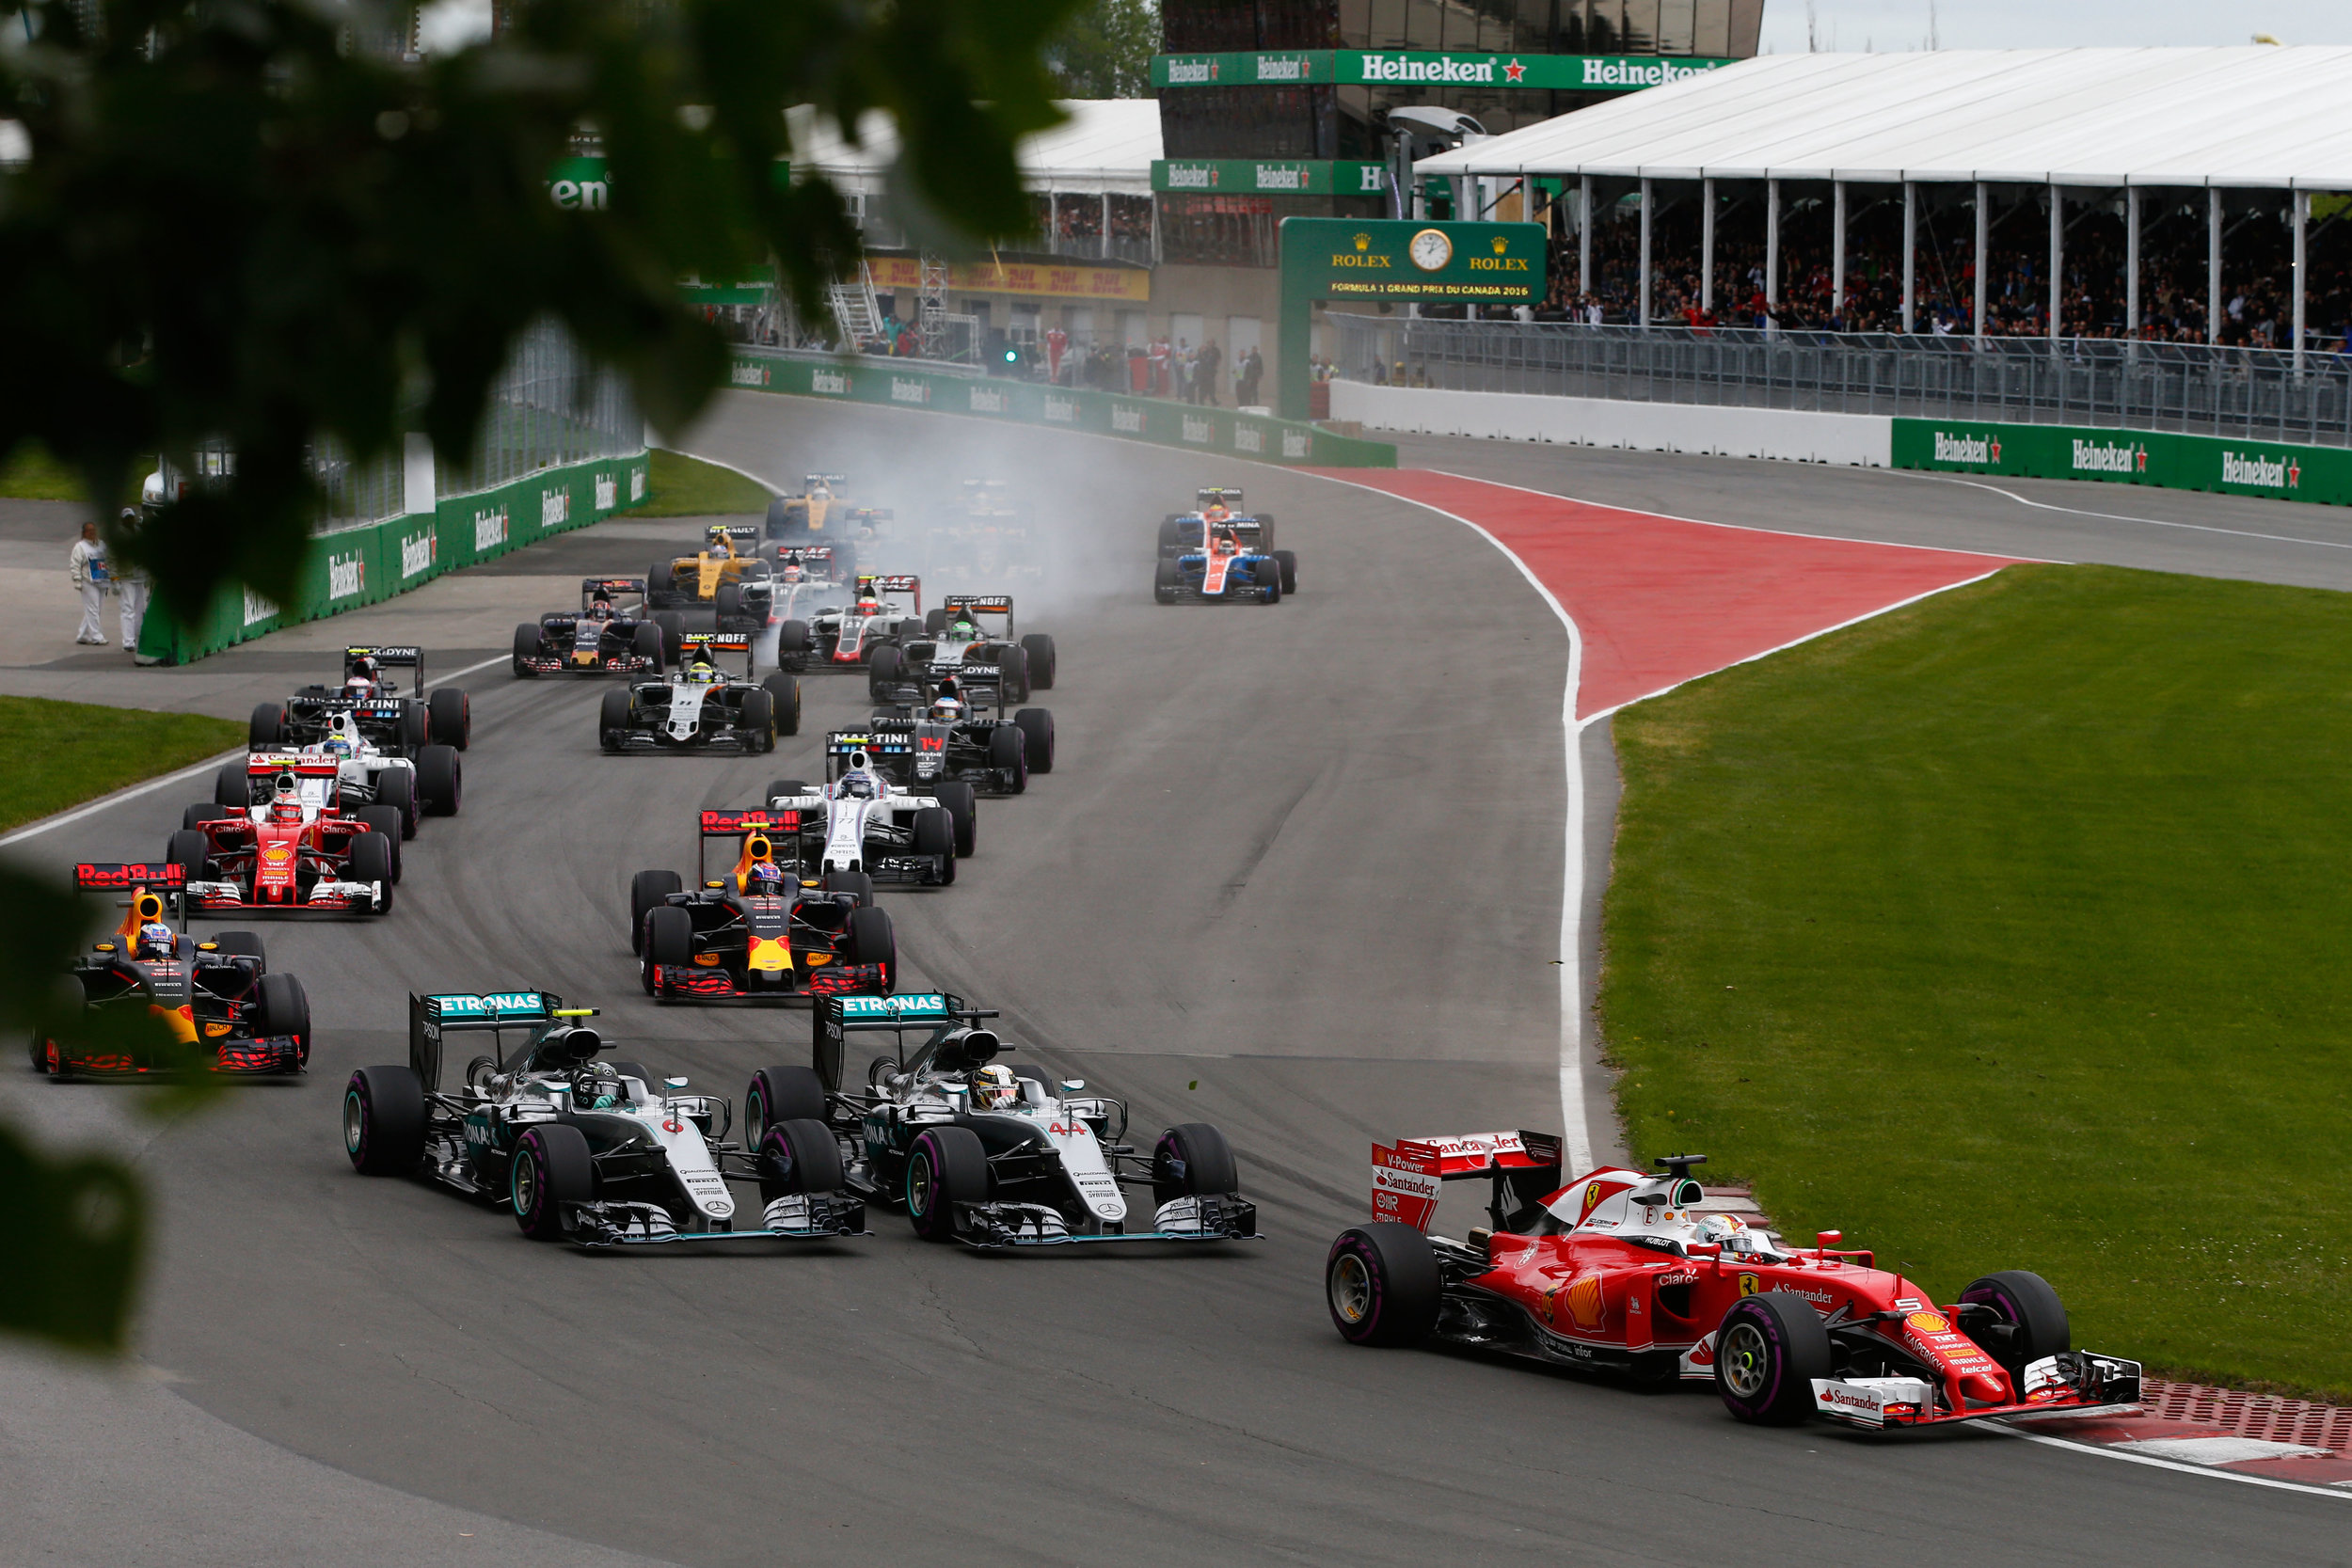 Seconds before Rosberg was squeezed off and wrecked his race. (Pic: Mercedes)